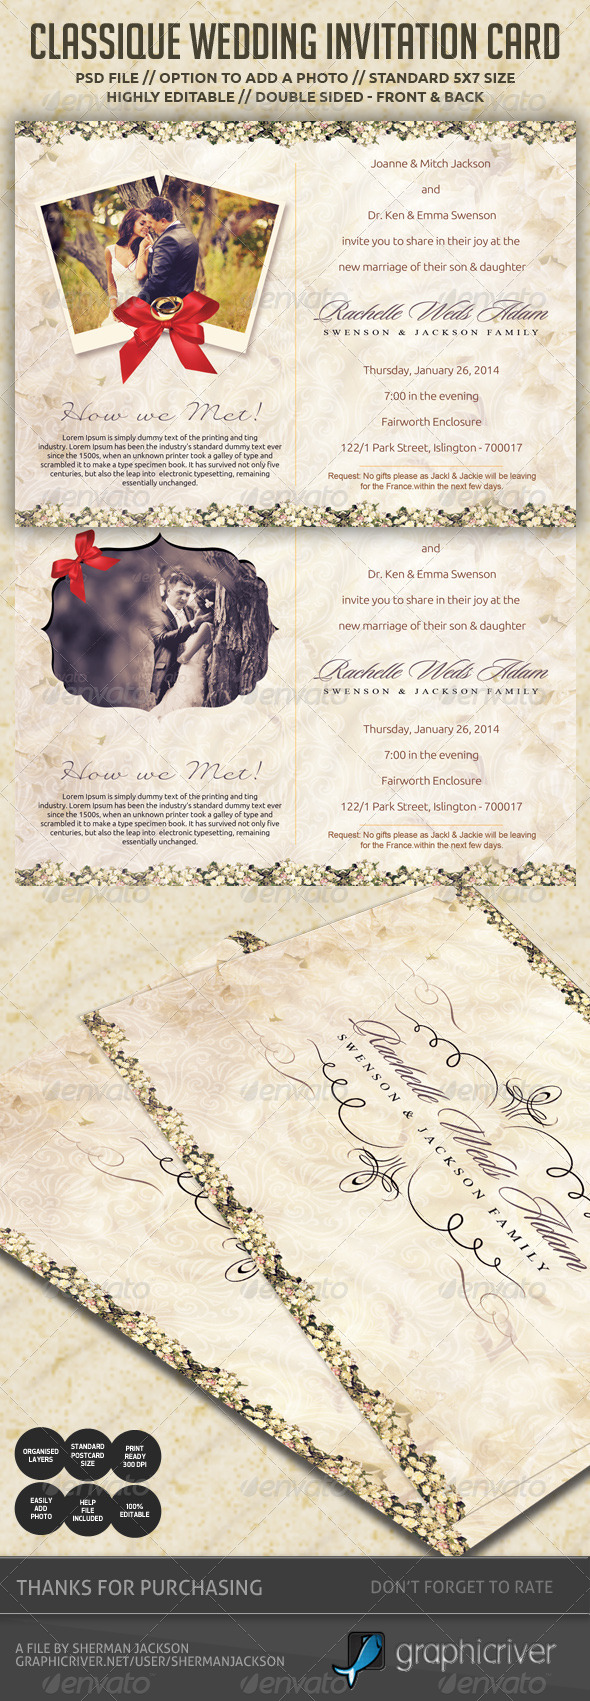 GraphicRiver Classique Wedding Invitation Postcard 6374408